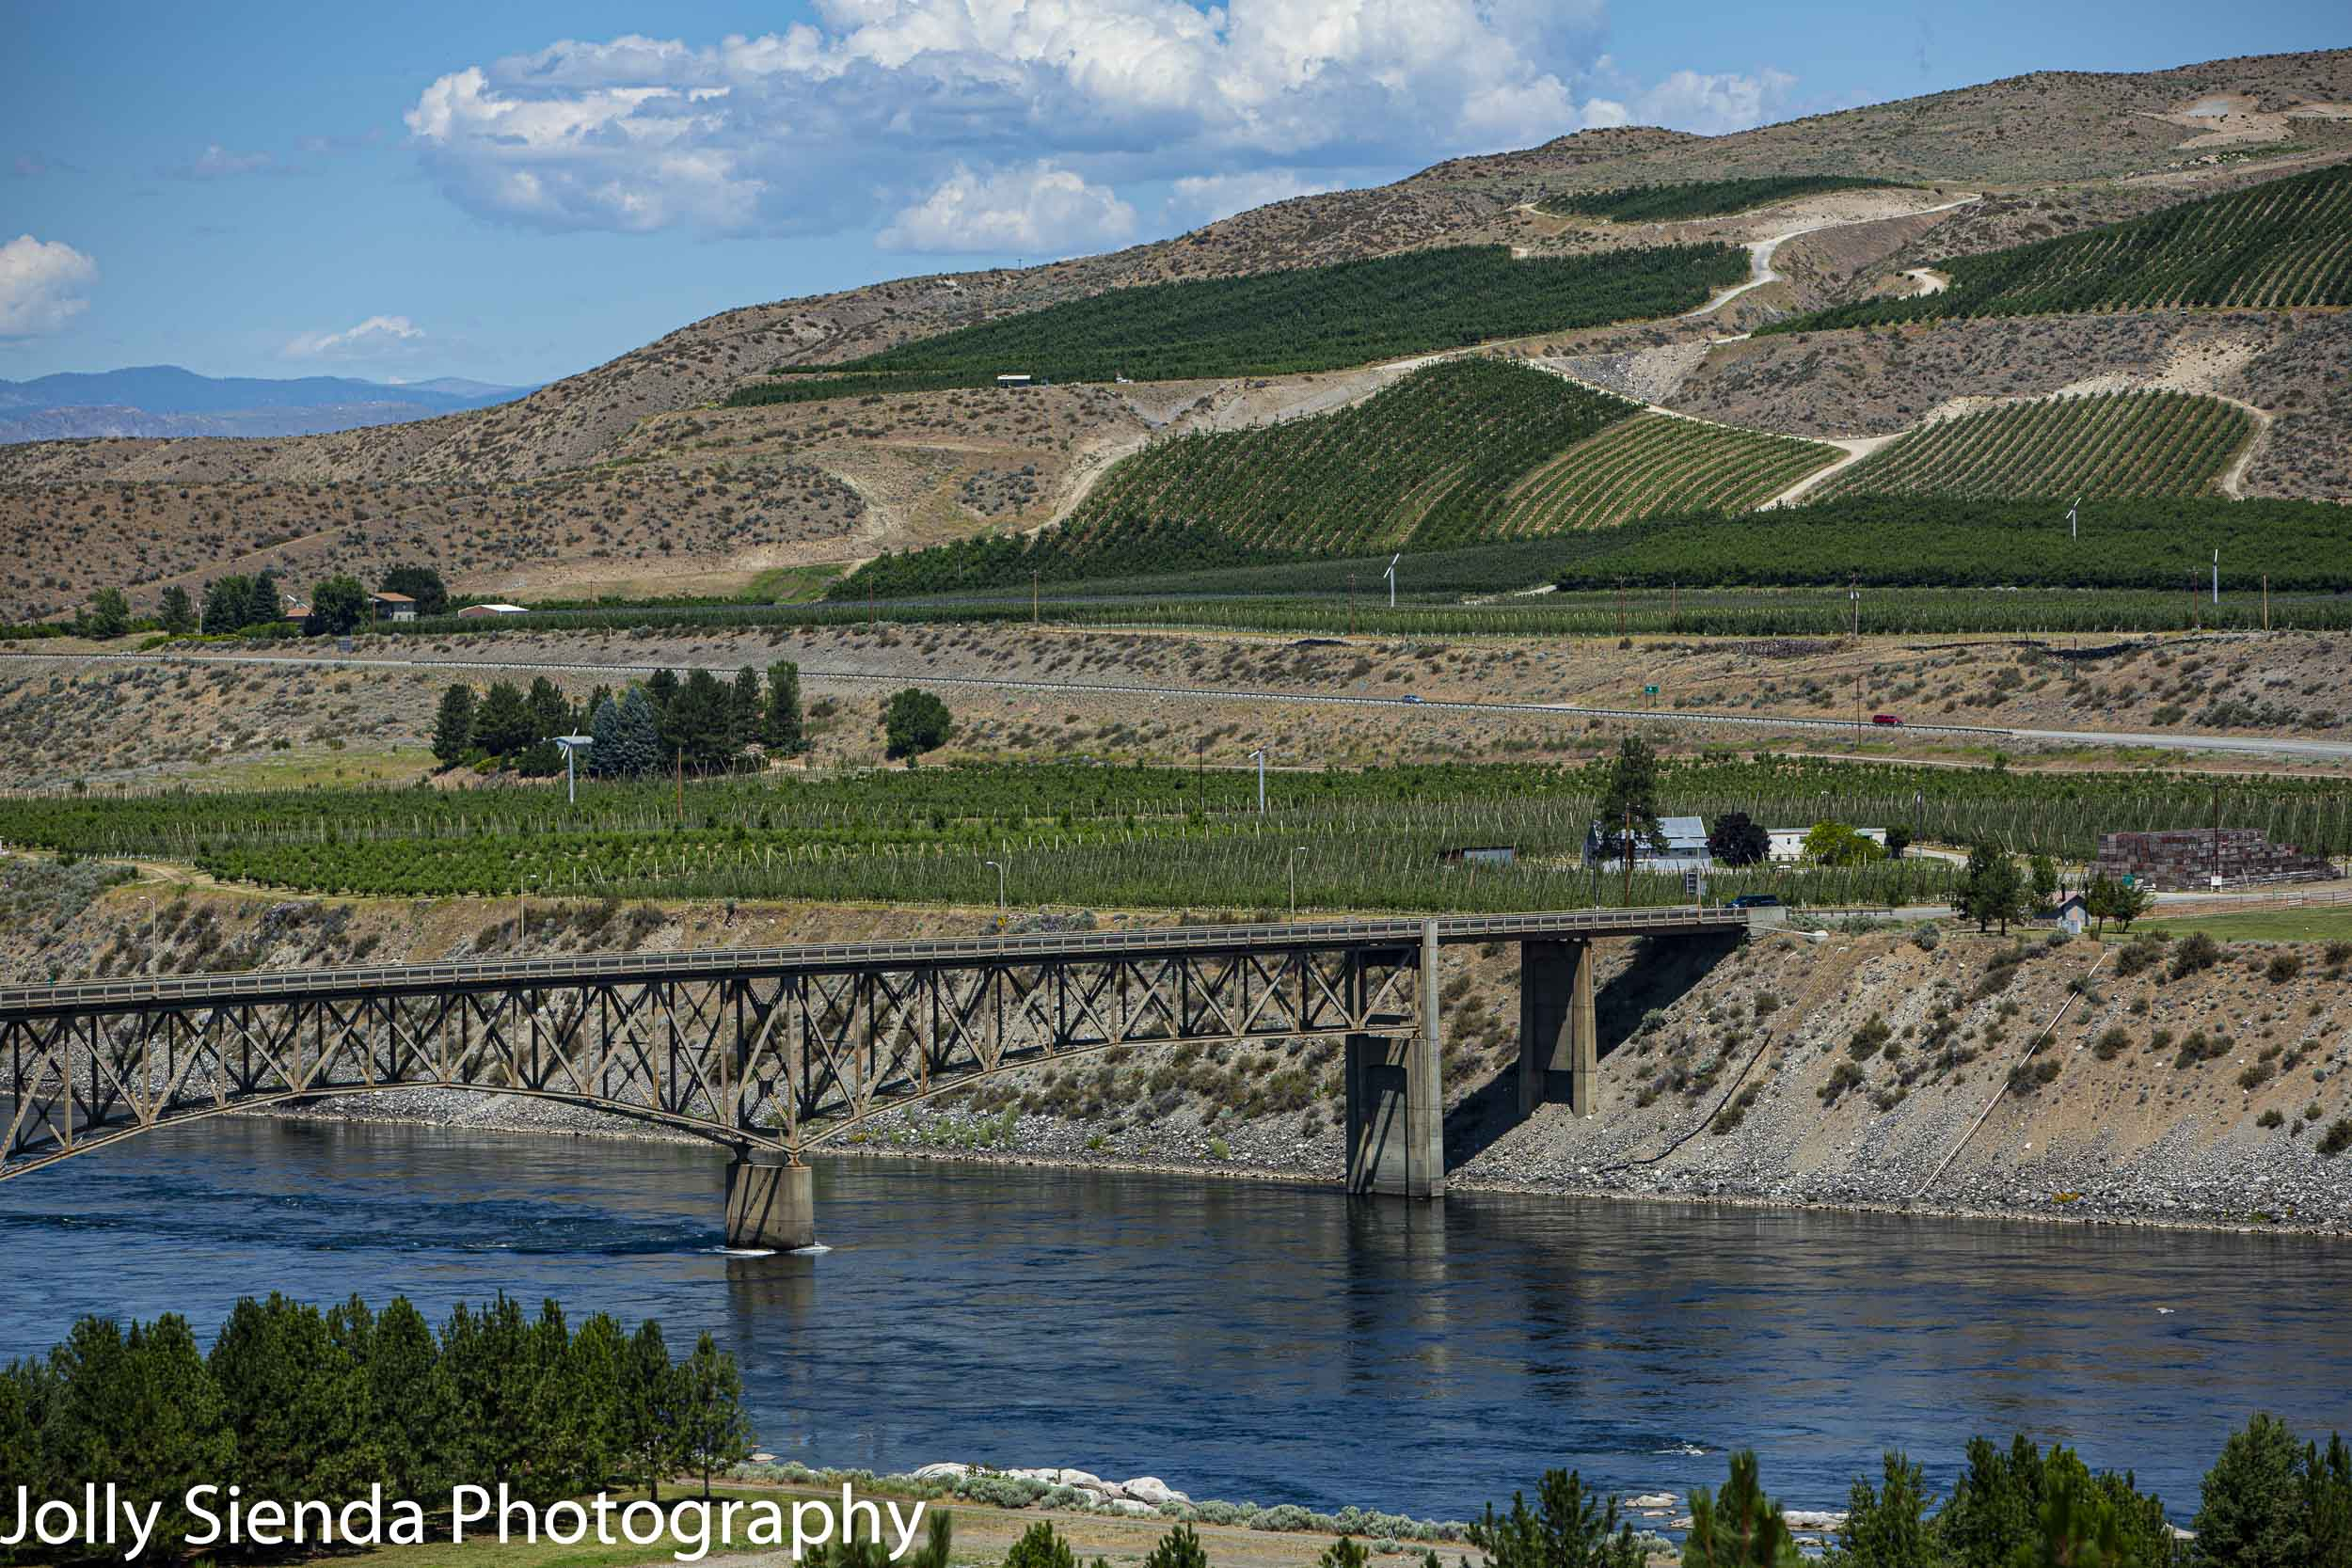 Bridgeport Bridge, orchards and vineyards near Chief Joseph Dam, WA.